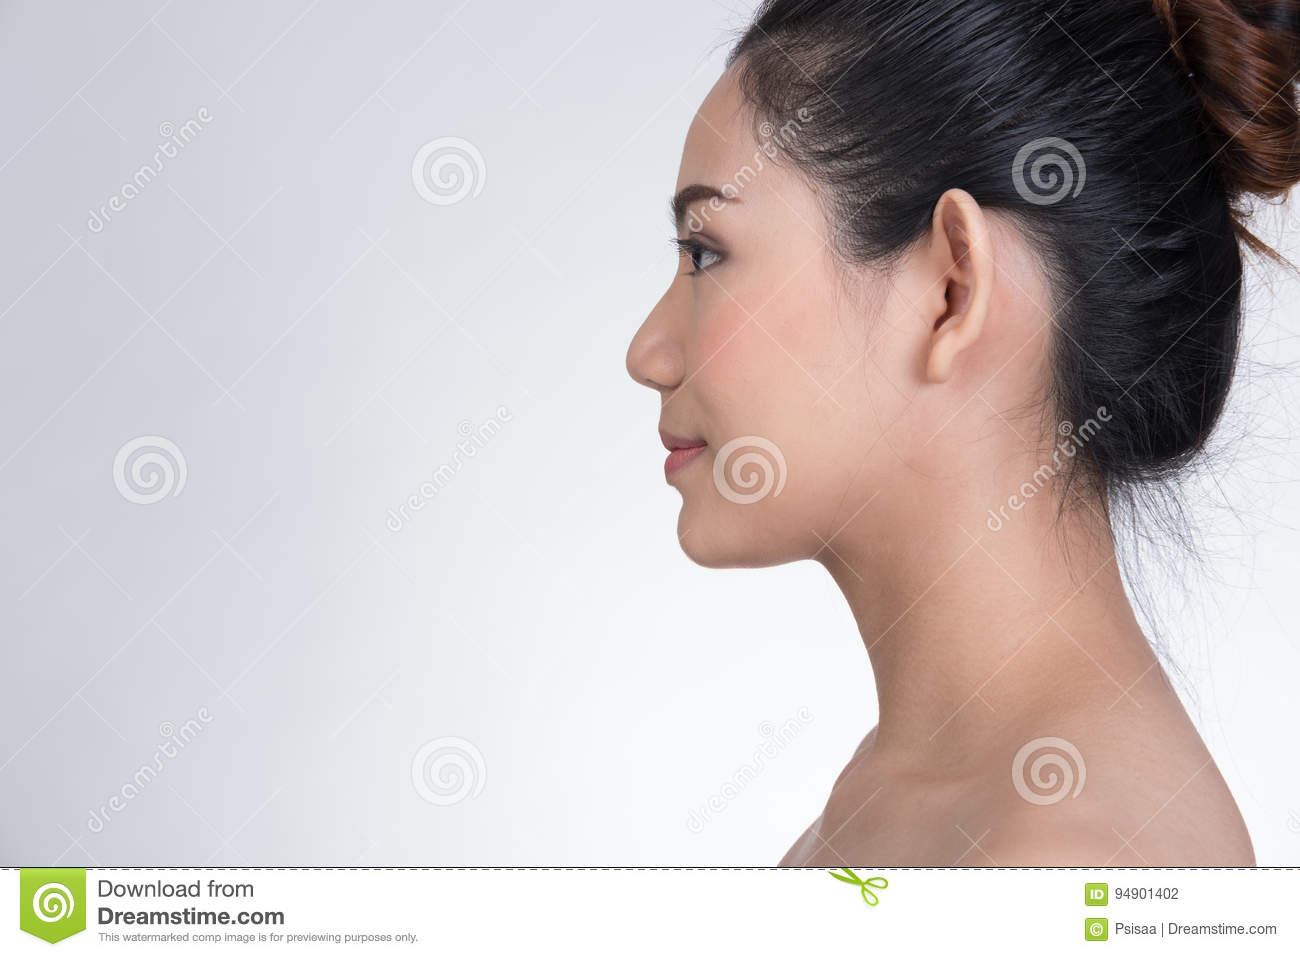 Portrait Of A Smiling Young Woman With Natural Make-up